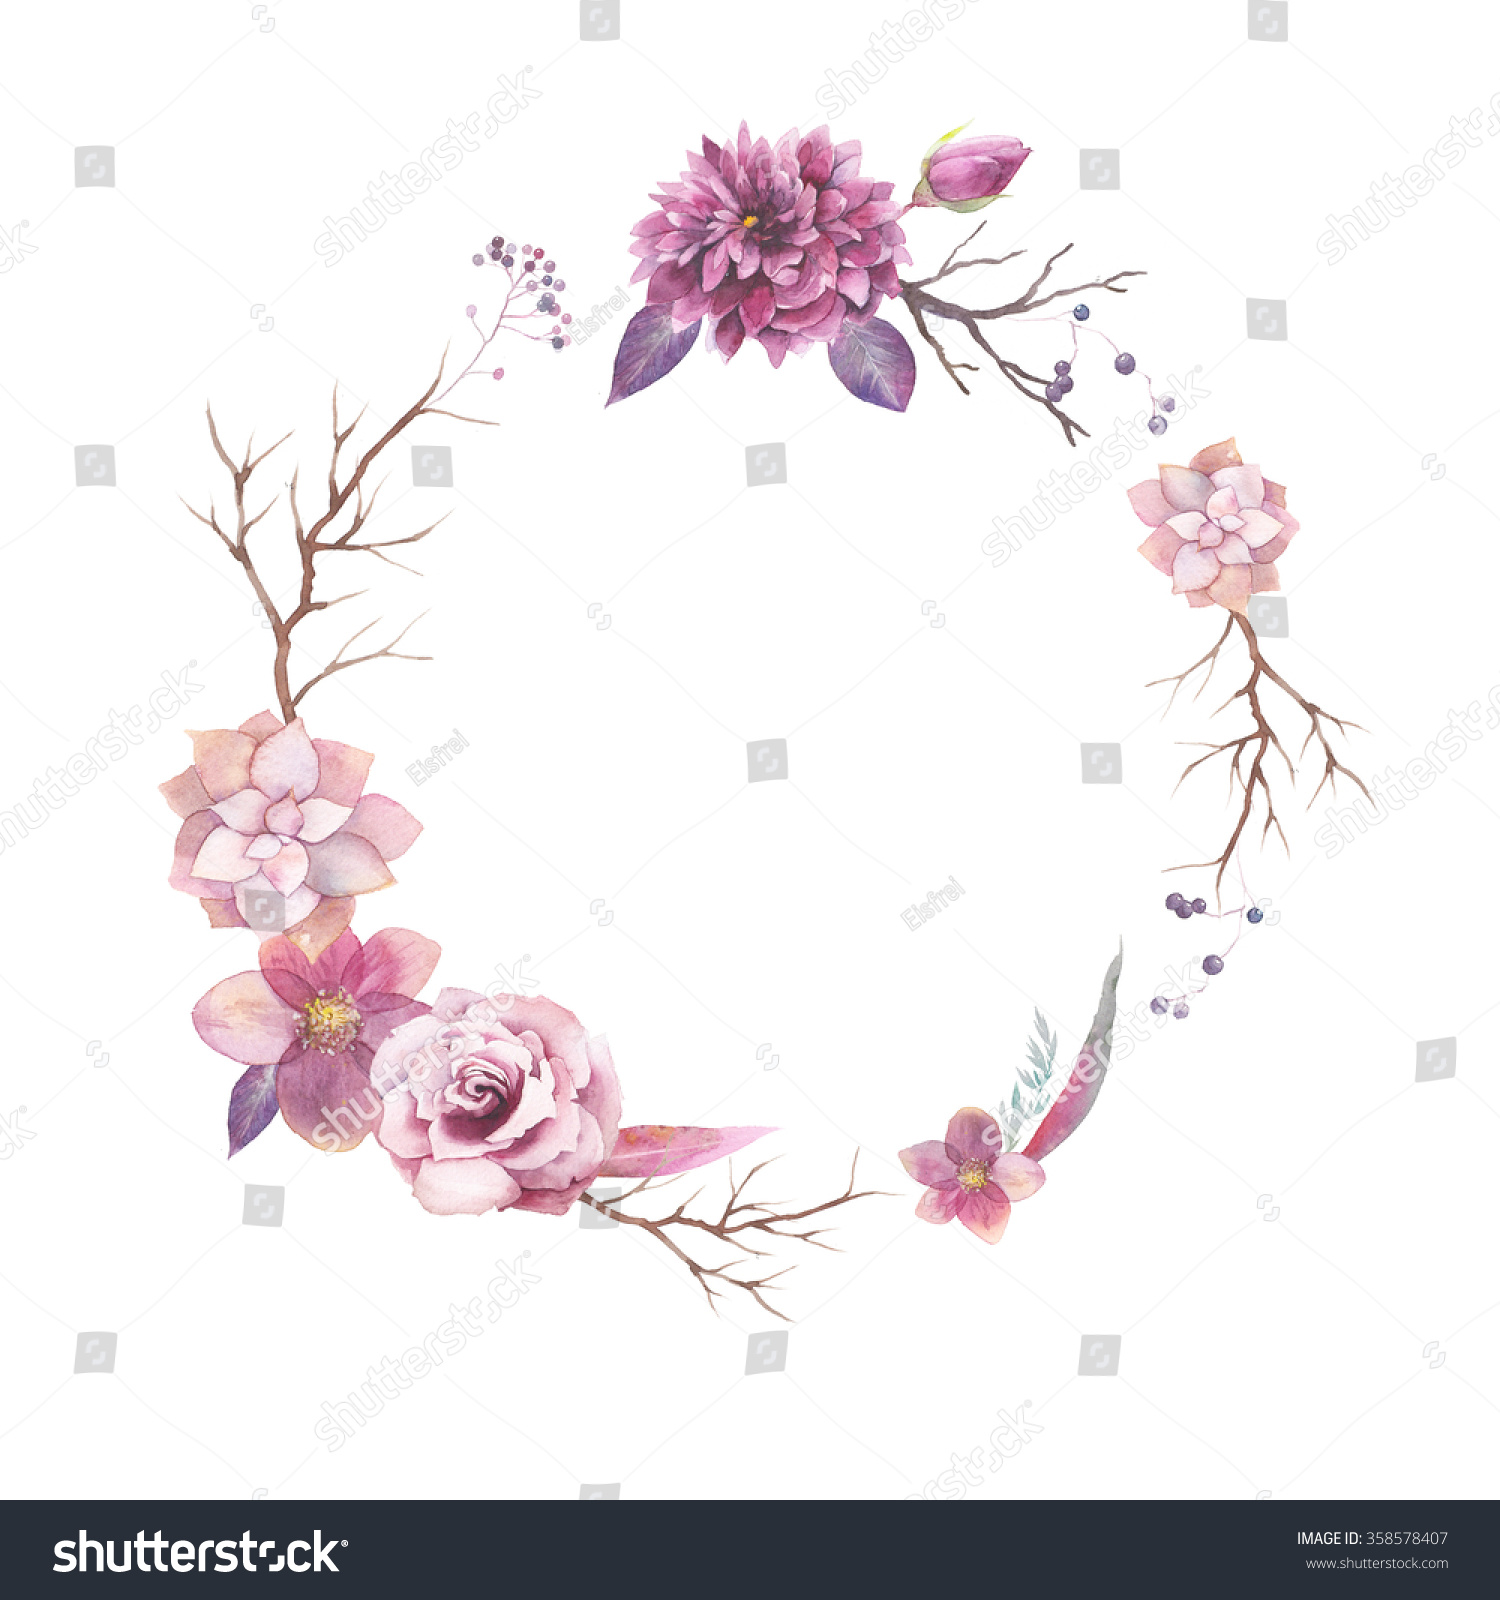 Watercolor Floral Wreath Isolated On White Stock